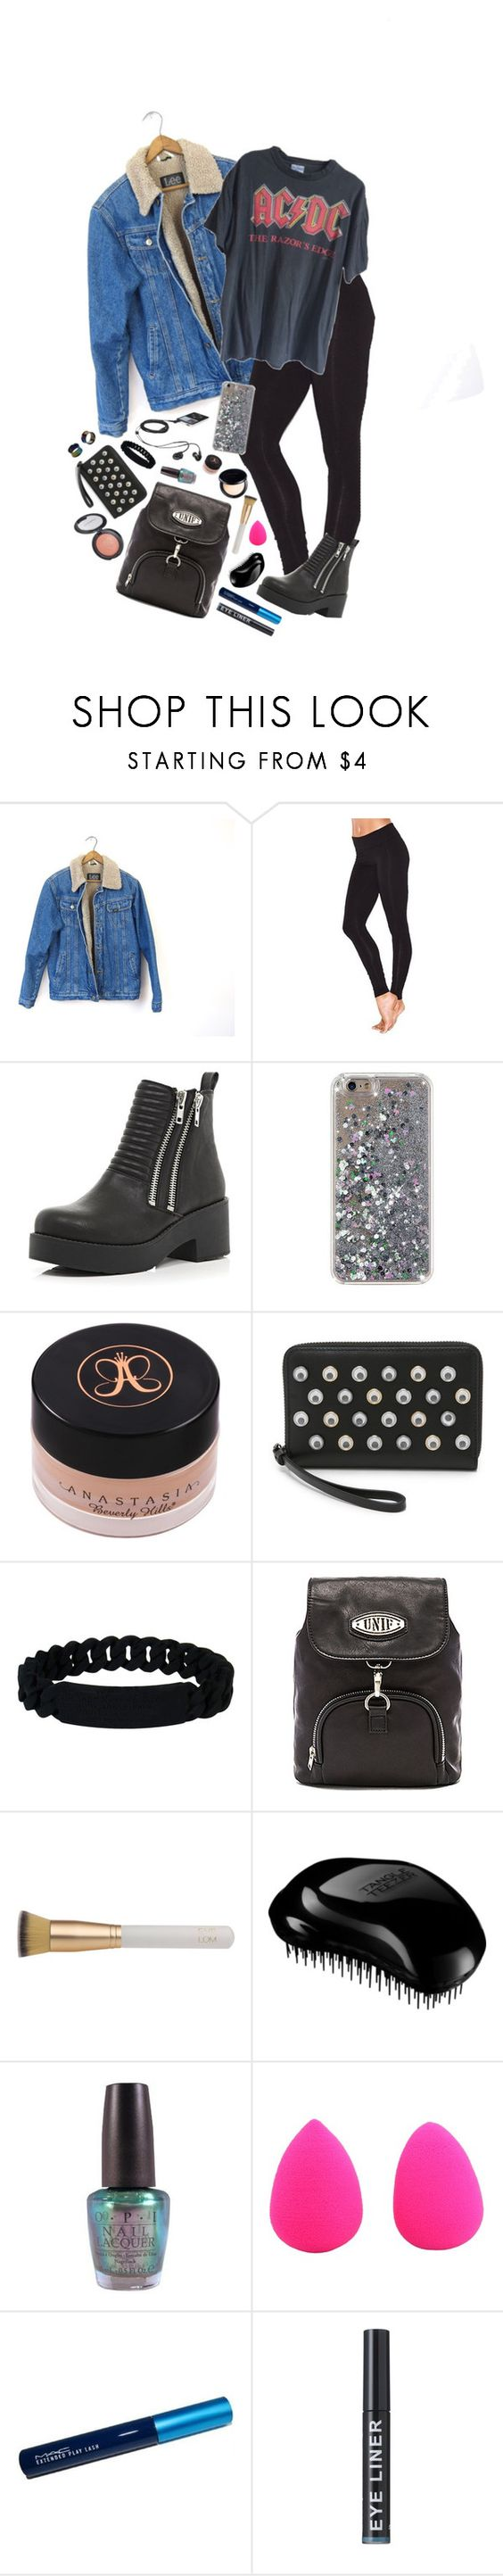 """""""Untitled #1060"""" by giriboy97 ❤ liked on Polyvore featuring Victoria's Secret, River Island, Marc by Marc Jacobs, UNIF, Eve Lom, Tangle Teezer, OPI and beautyblender"""